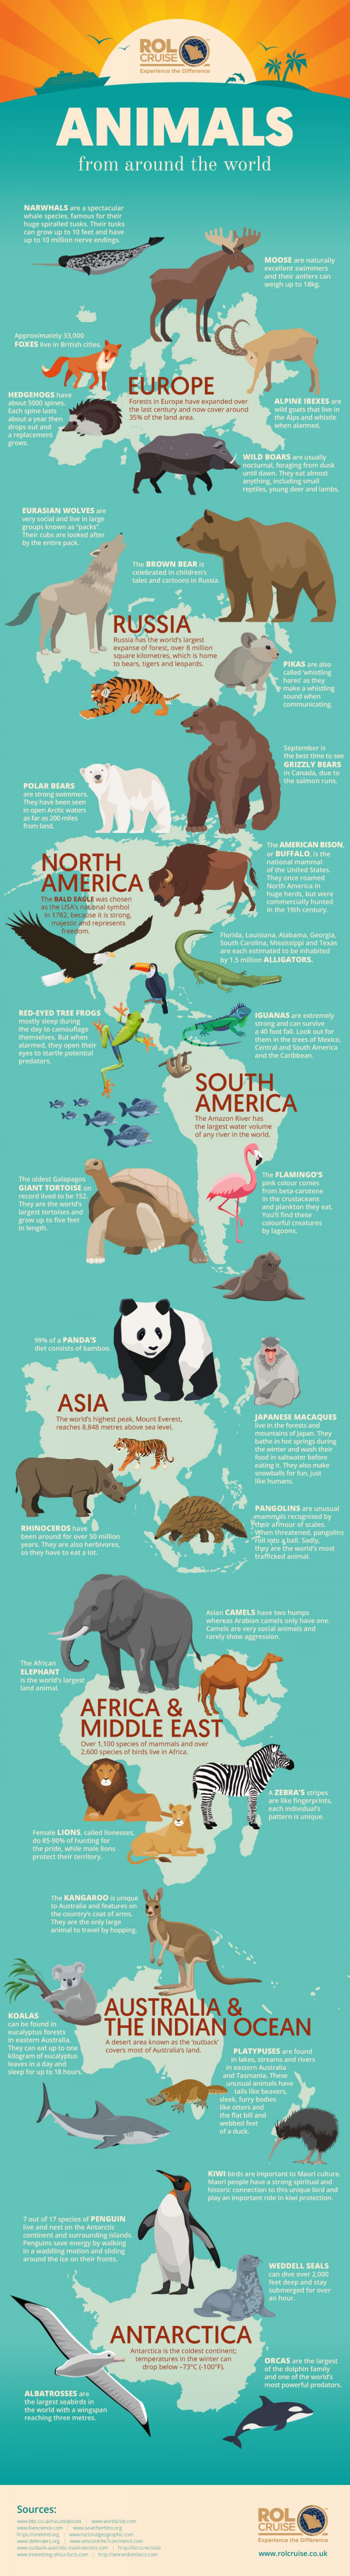 animals-from-around-the-world-infographic-plaza